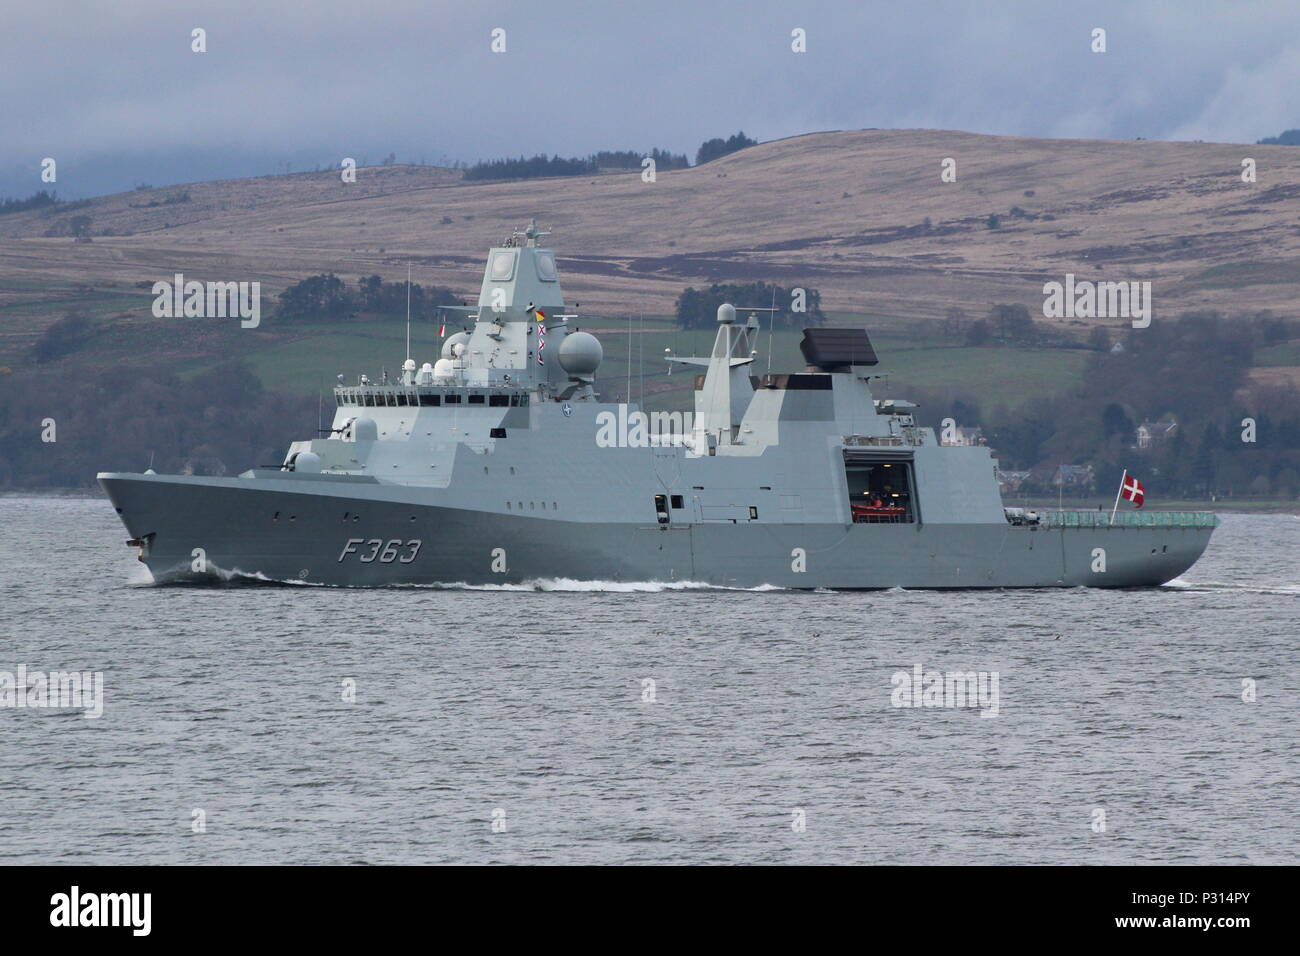 KDM Niels Juel (F363), an Iver Huitfeldt-class frigate operated by the Royal Danish Navy, passing Gourock at the start of Exercise Joint Warrior 18-1. Stock Photo